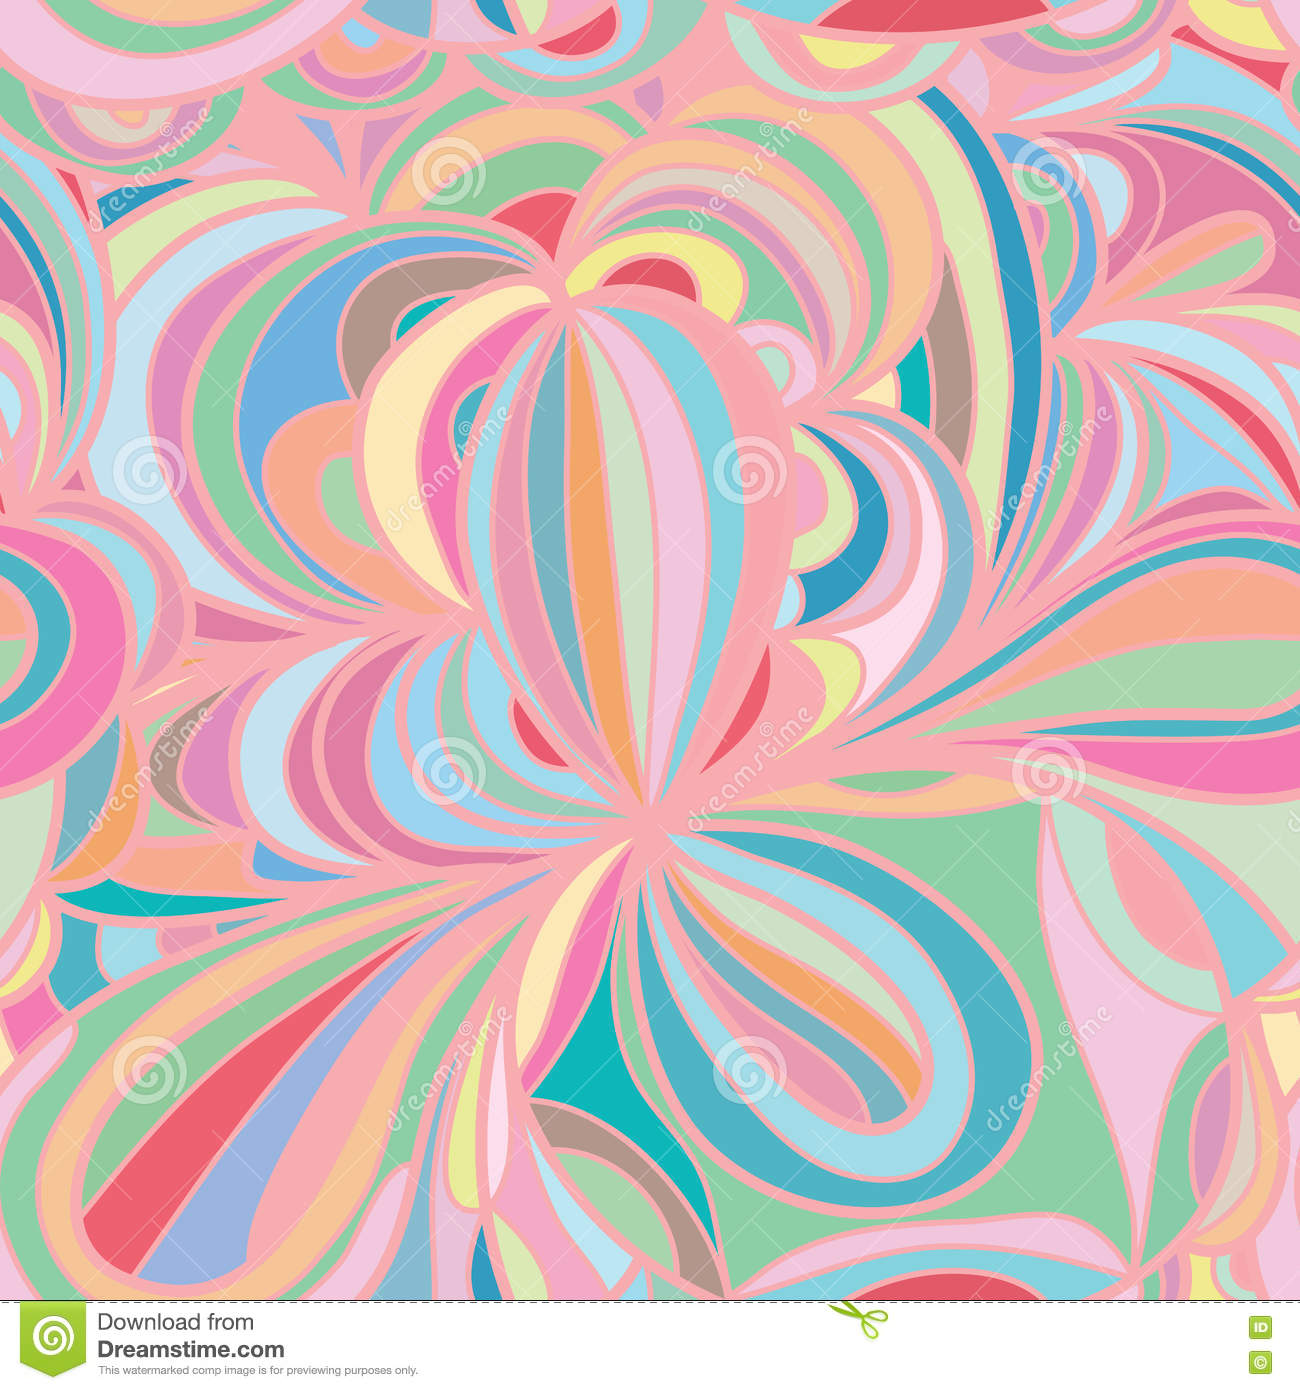 Floral design in circle stock vector image 75615991 - Flower Leaf Circle Pastel Seamless Pattern Illustration Drawing Color 74763991 Flower Leaf Circle Pastel Seamless Pattern